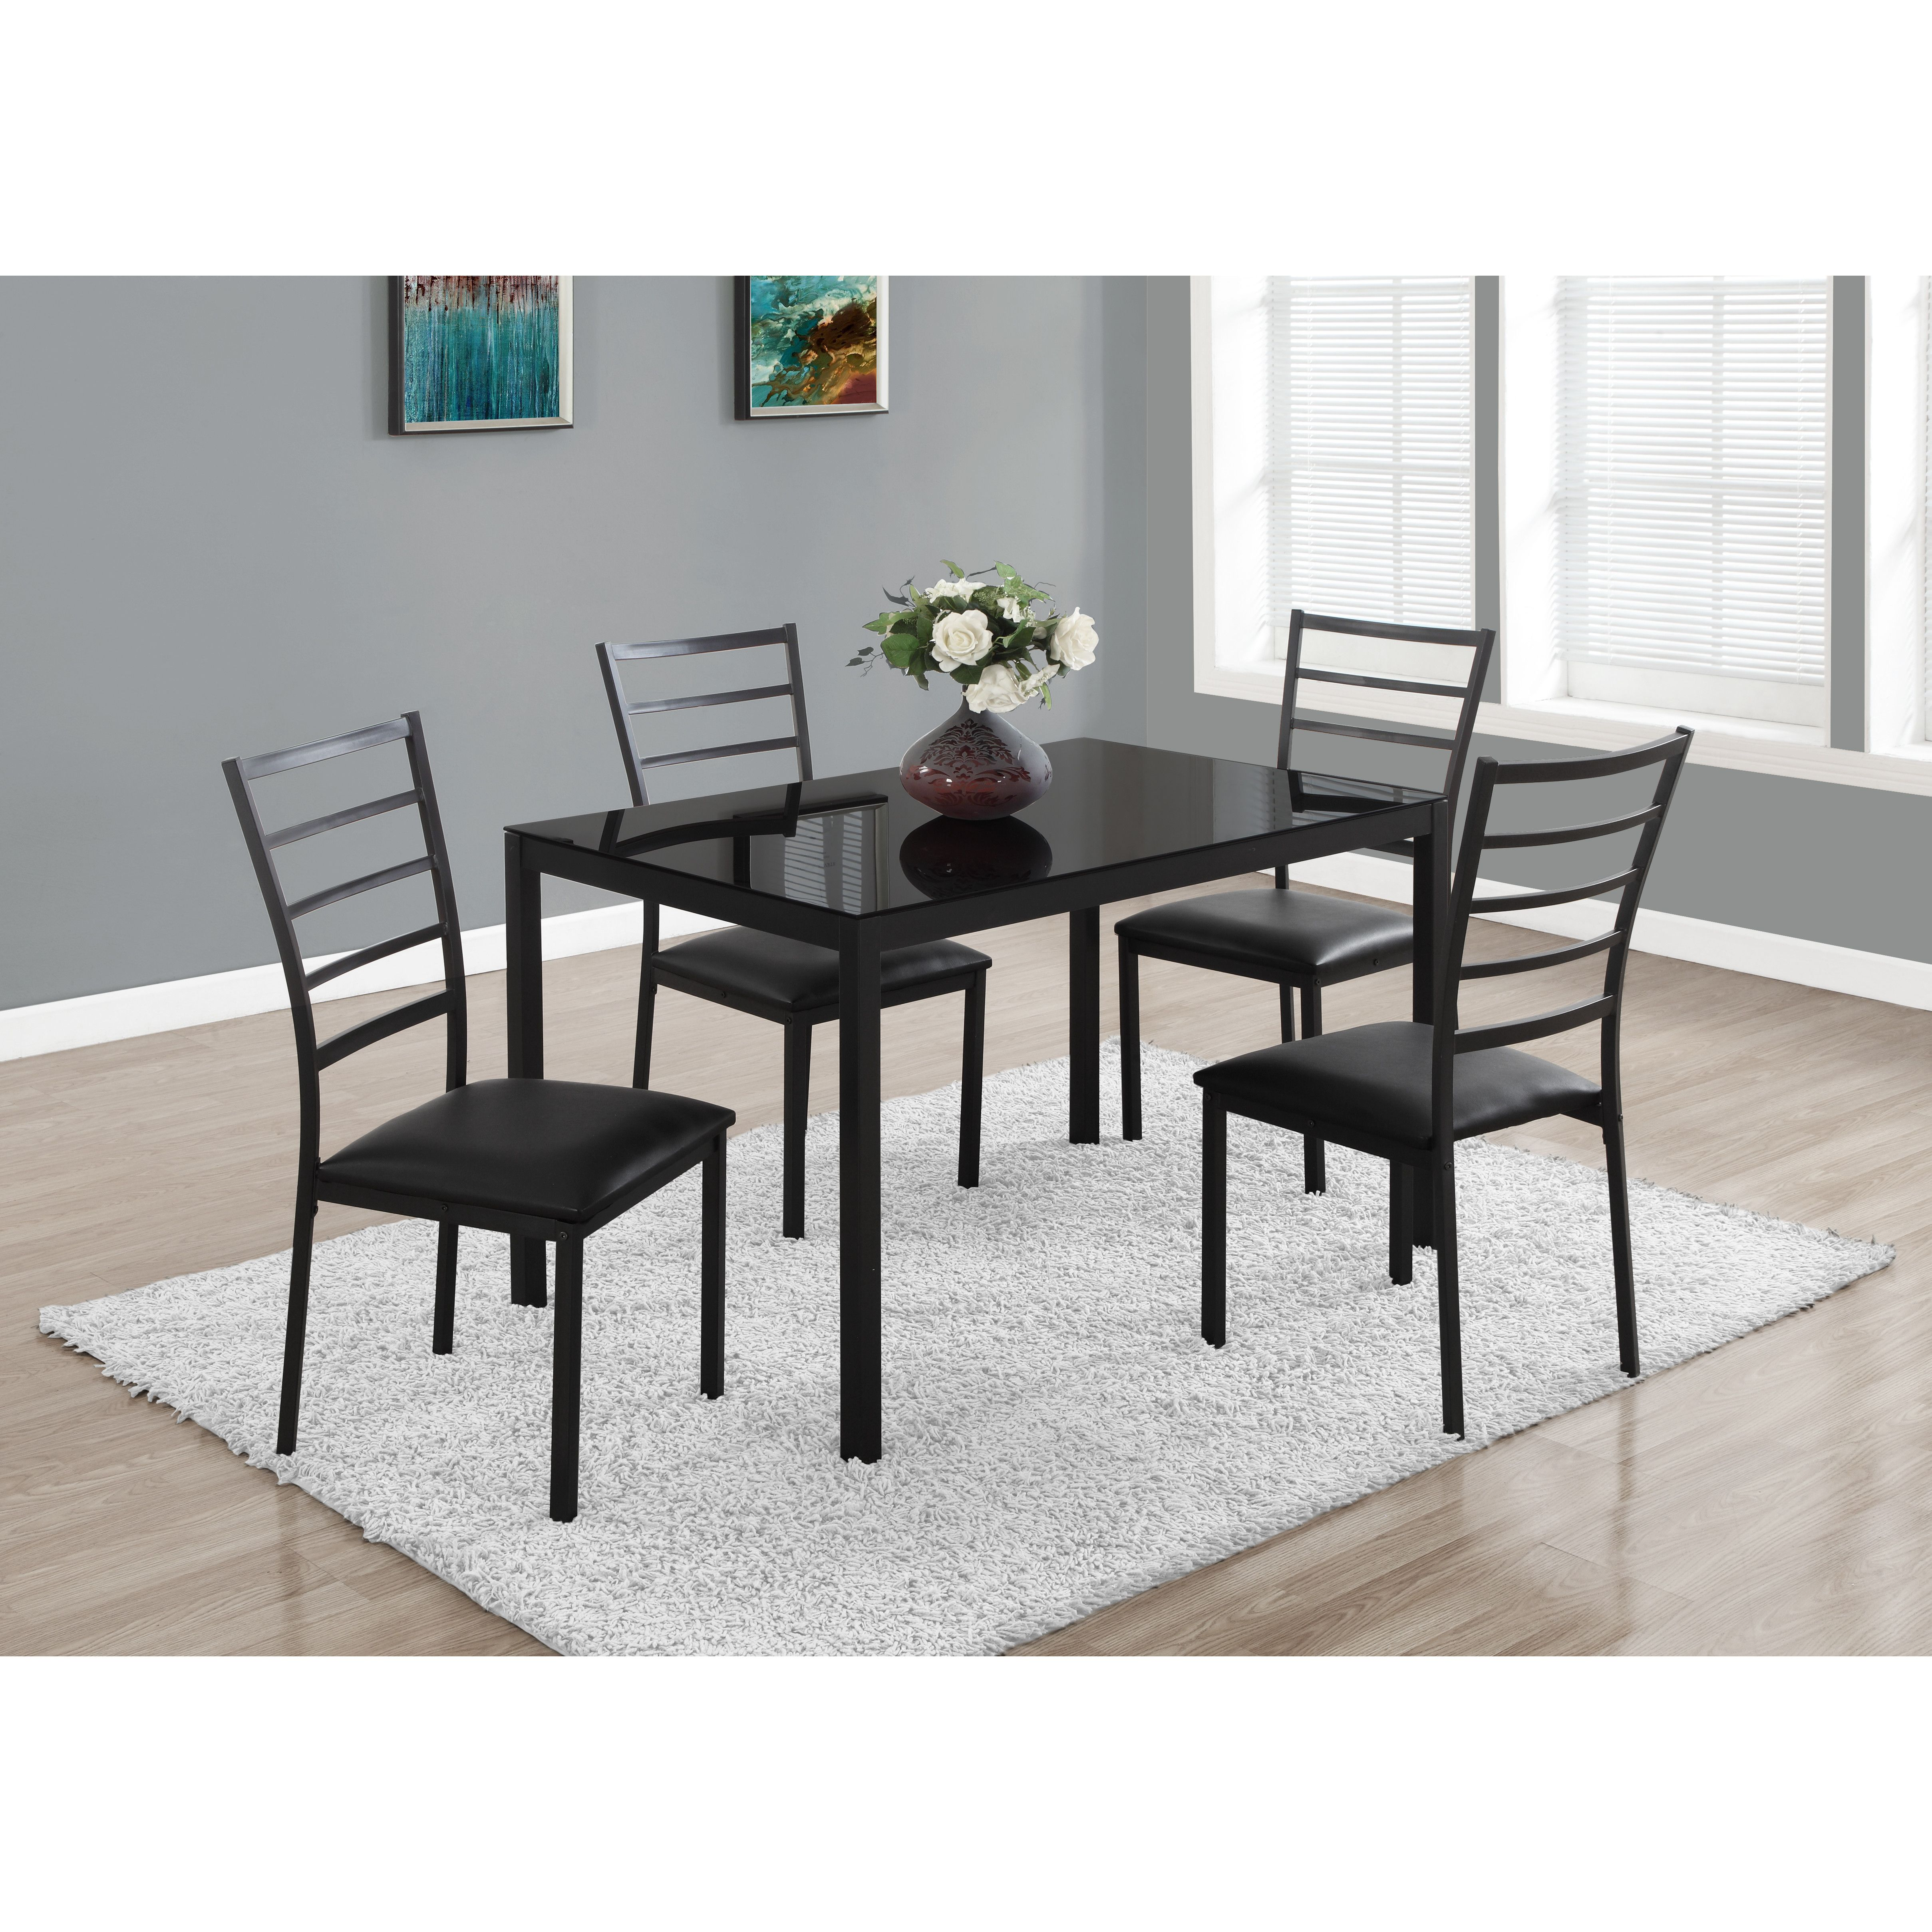 Monarch Specialties Inc5 Piece Dining Set  Apartment Inspo Enchanting Dining Room Chairs Online Design Inspiration